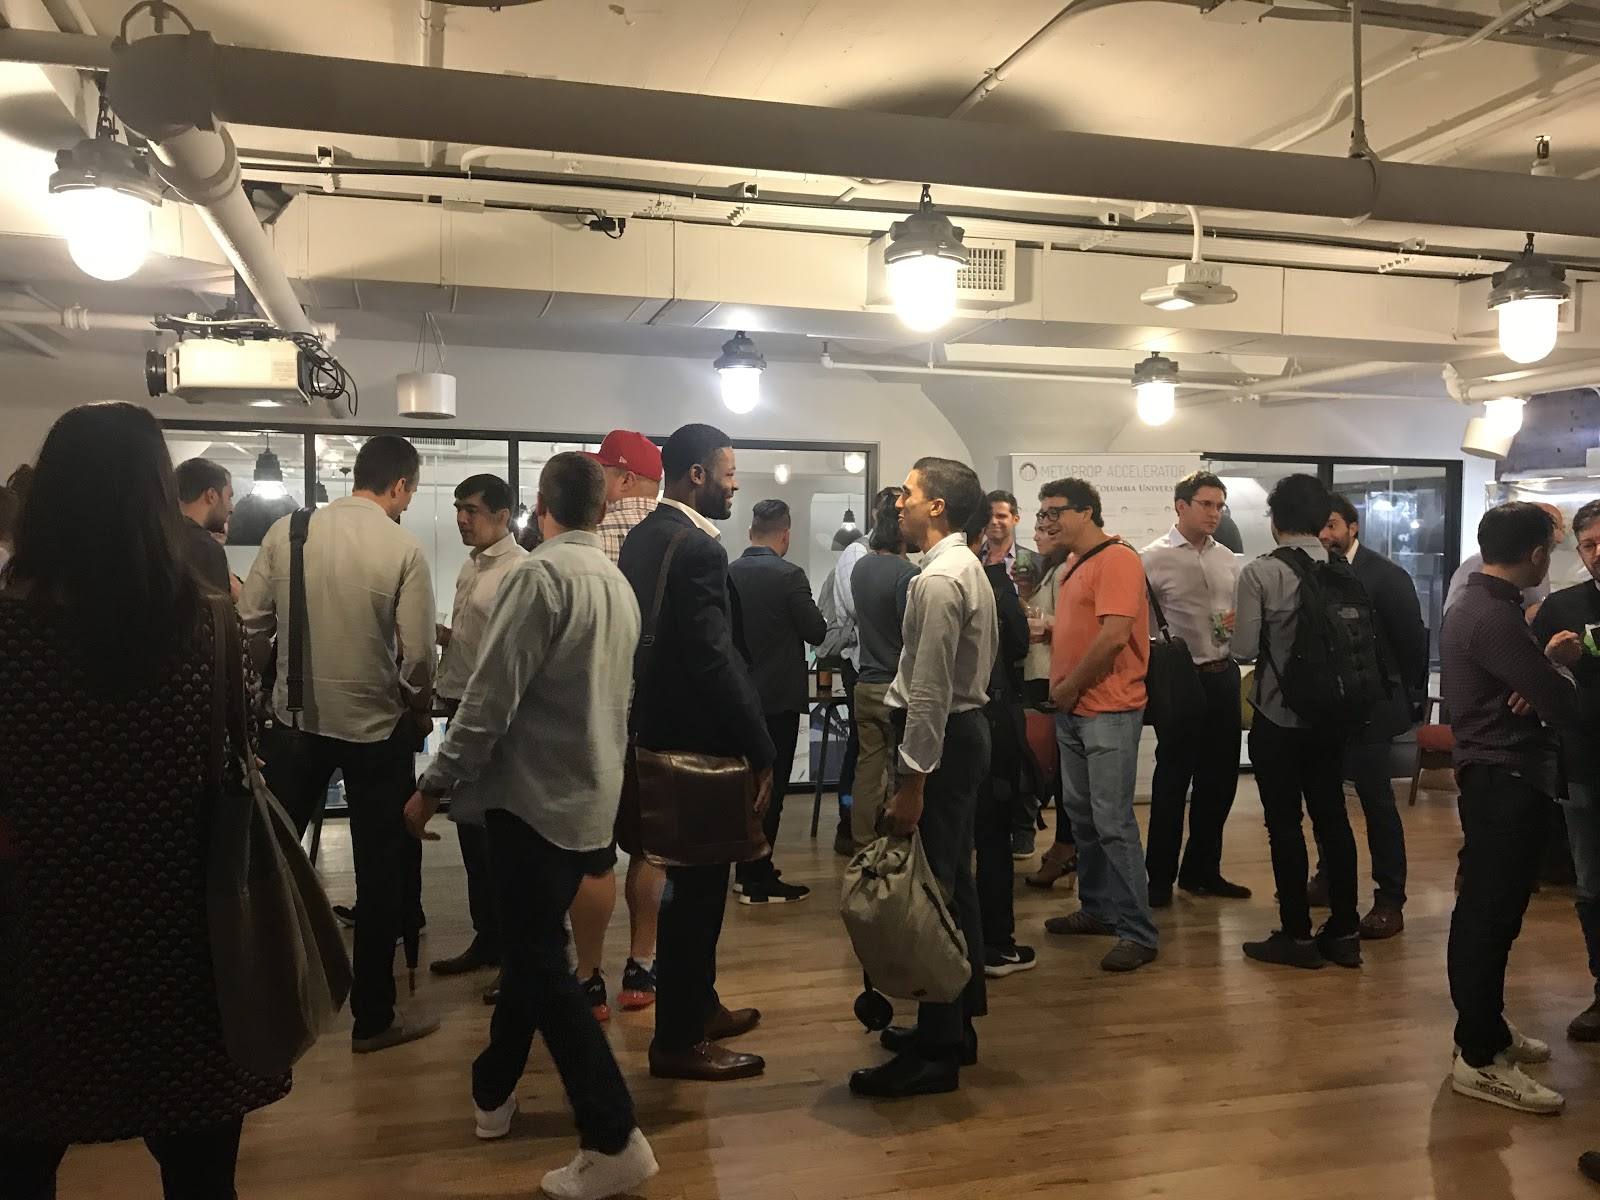 We celebrated with a Welcome Toast at the Columbia Startup Lab: